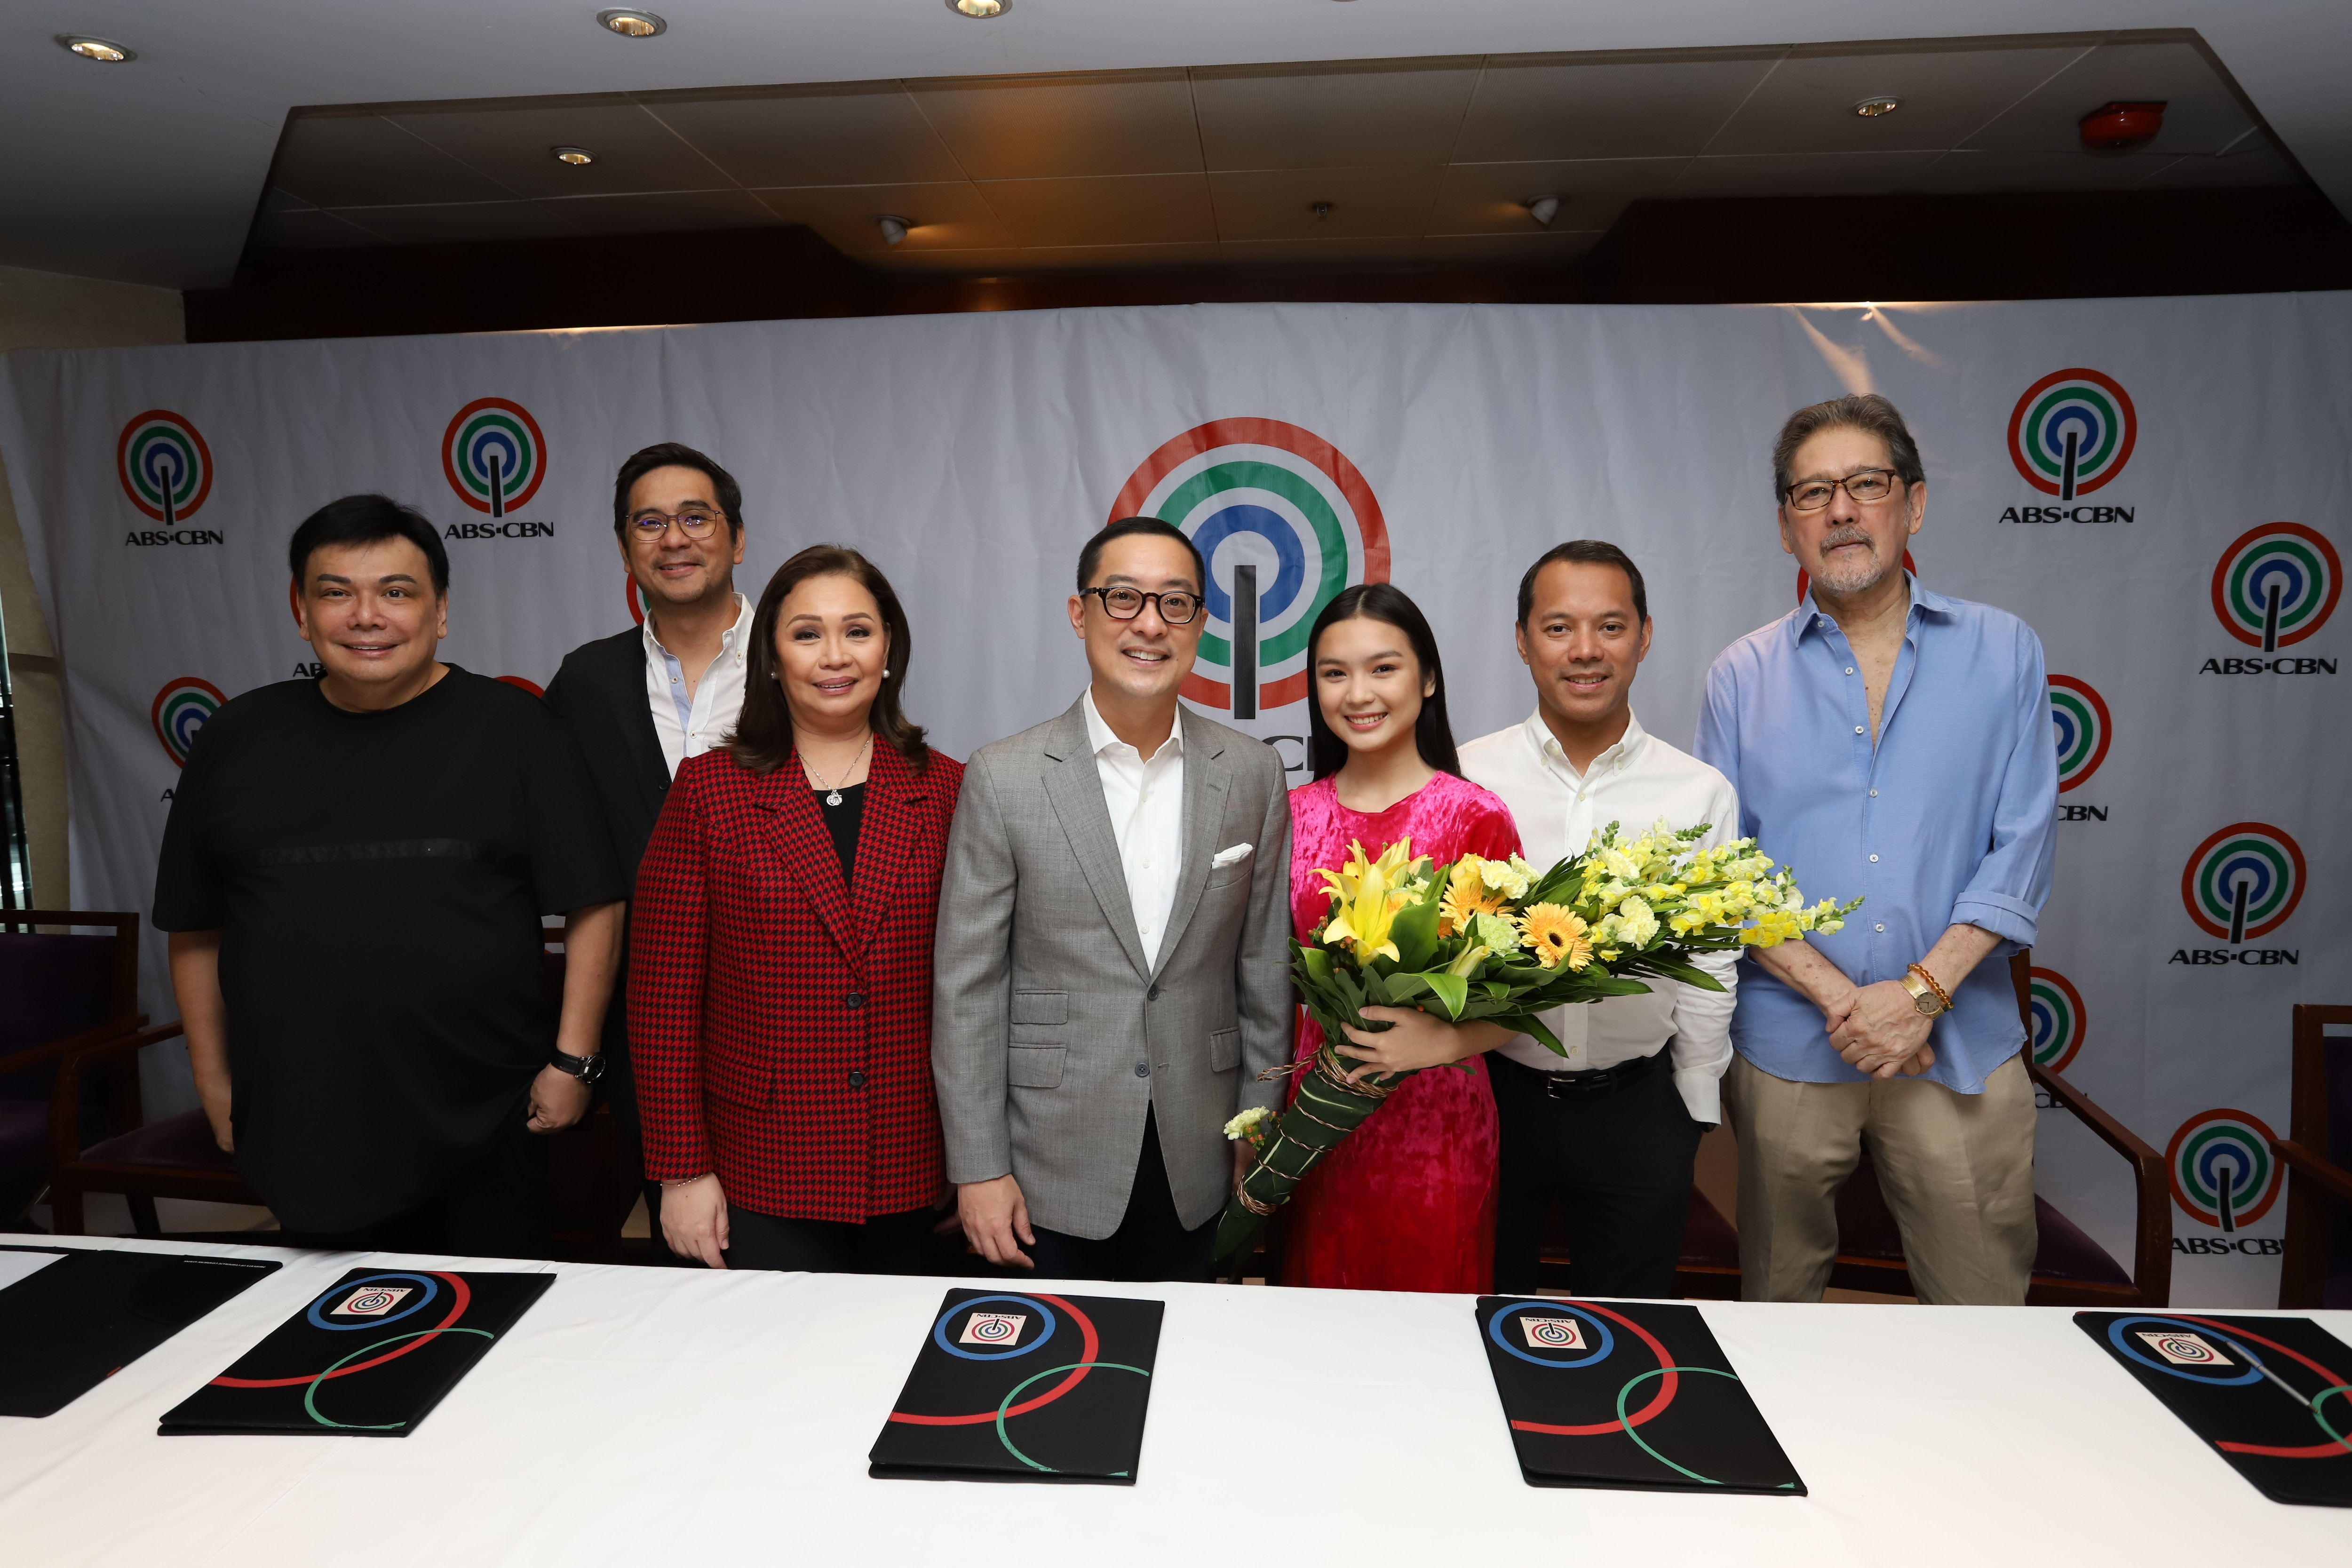 Francine Diaz with ABS CBN executives